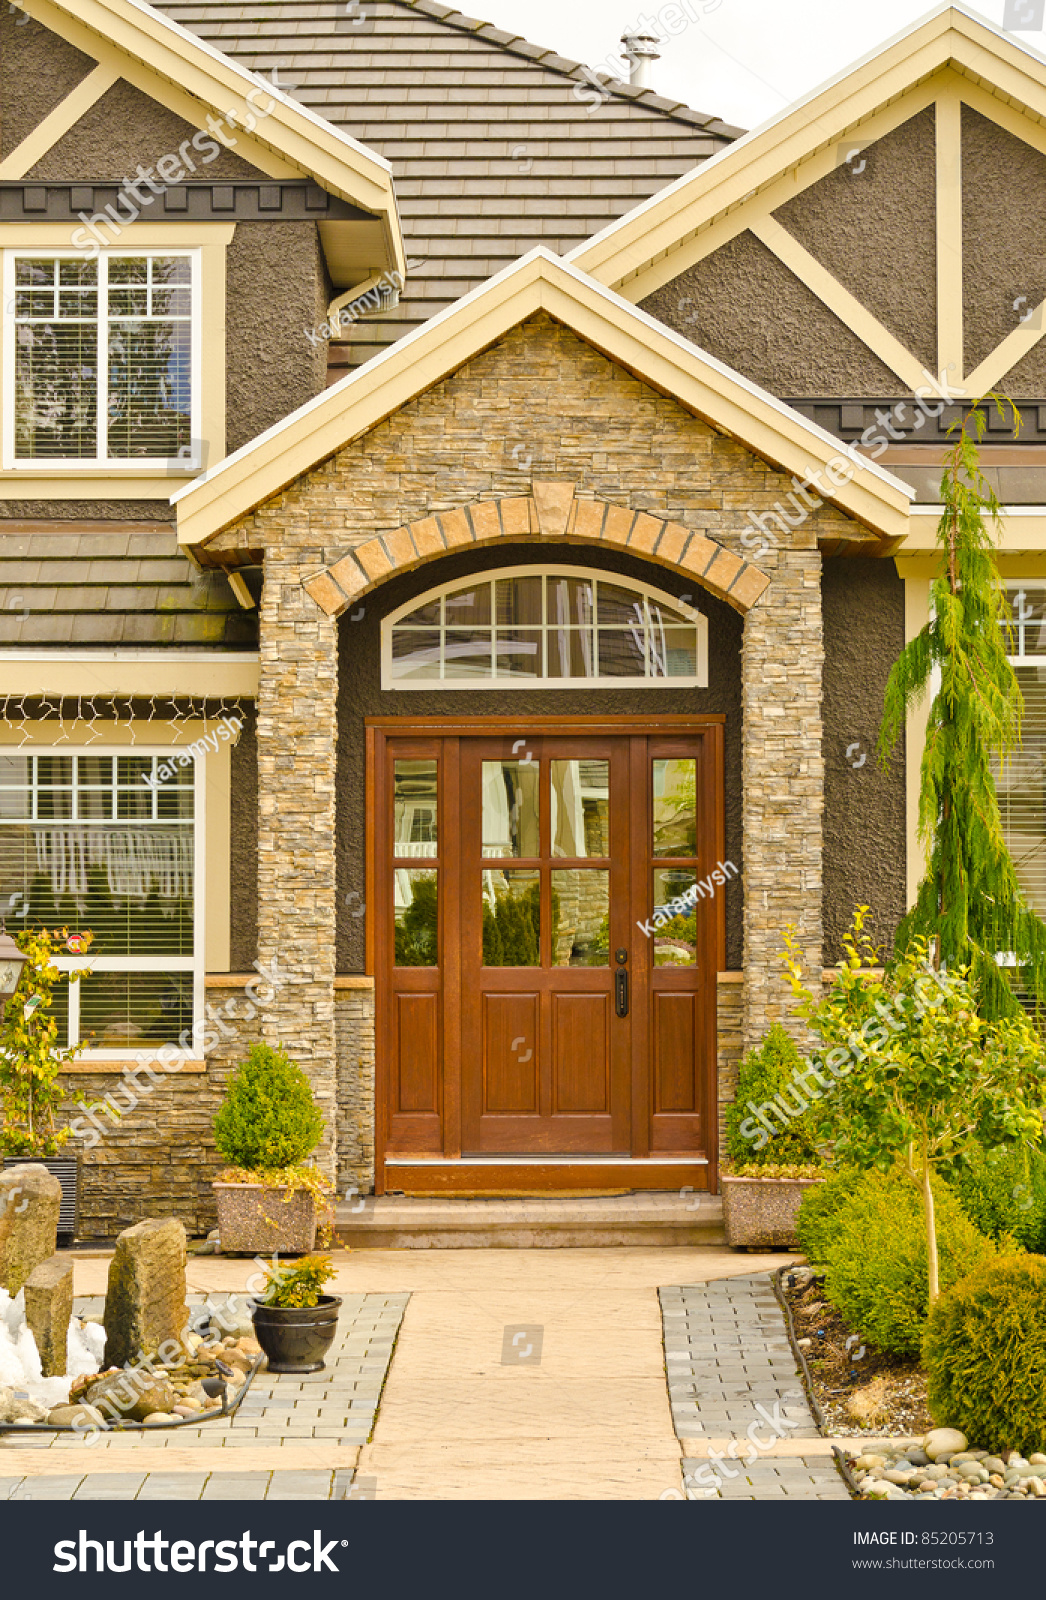 Entrance Of A Nice House With Outdoor Landscape Stock